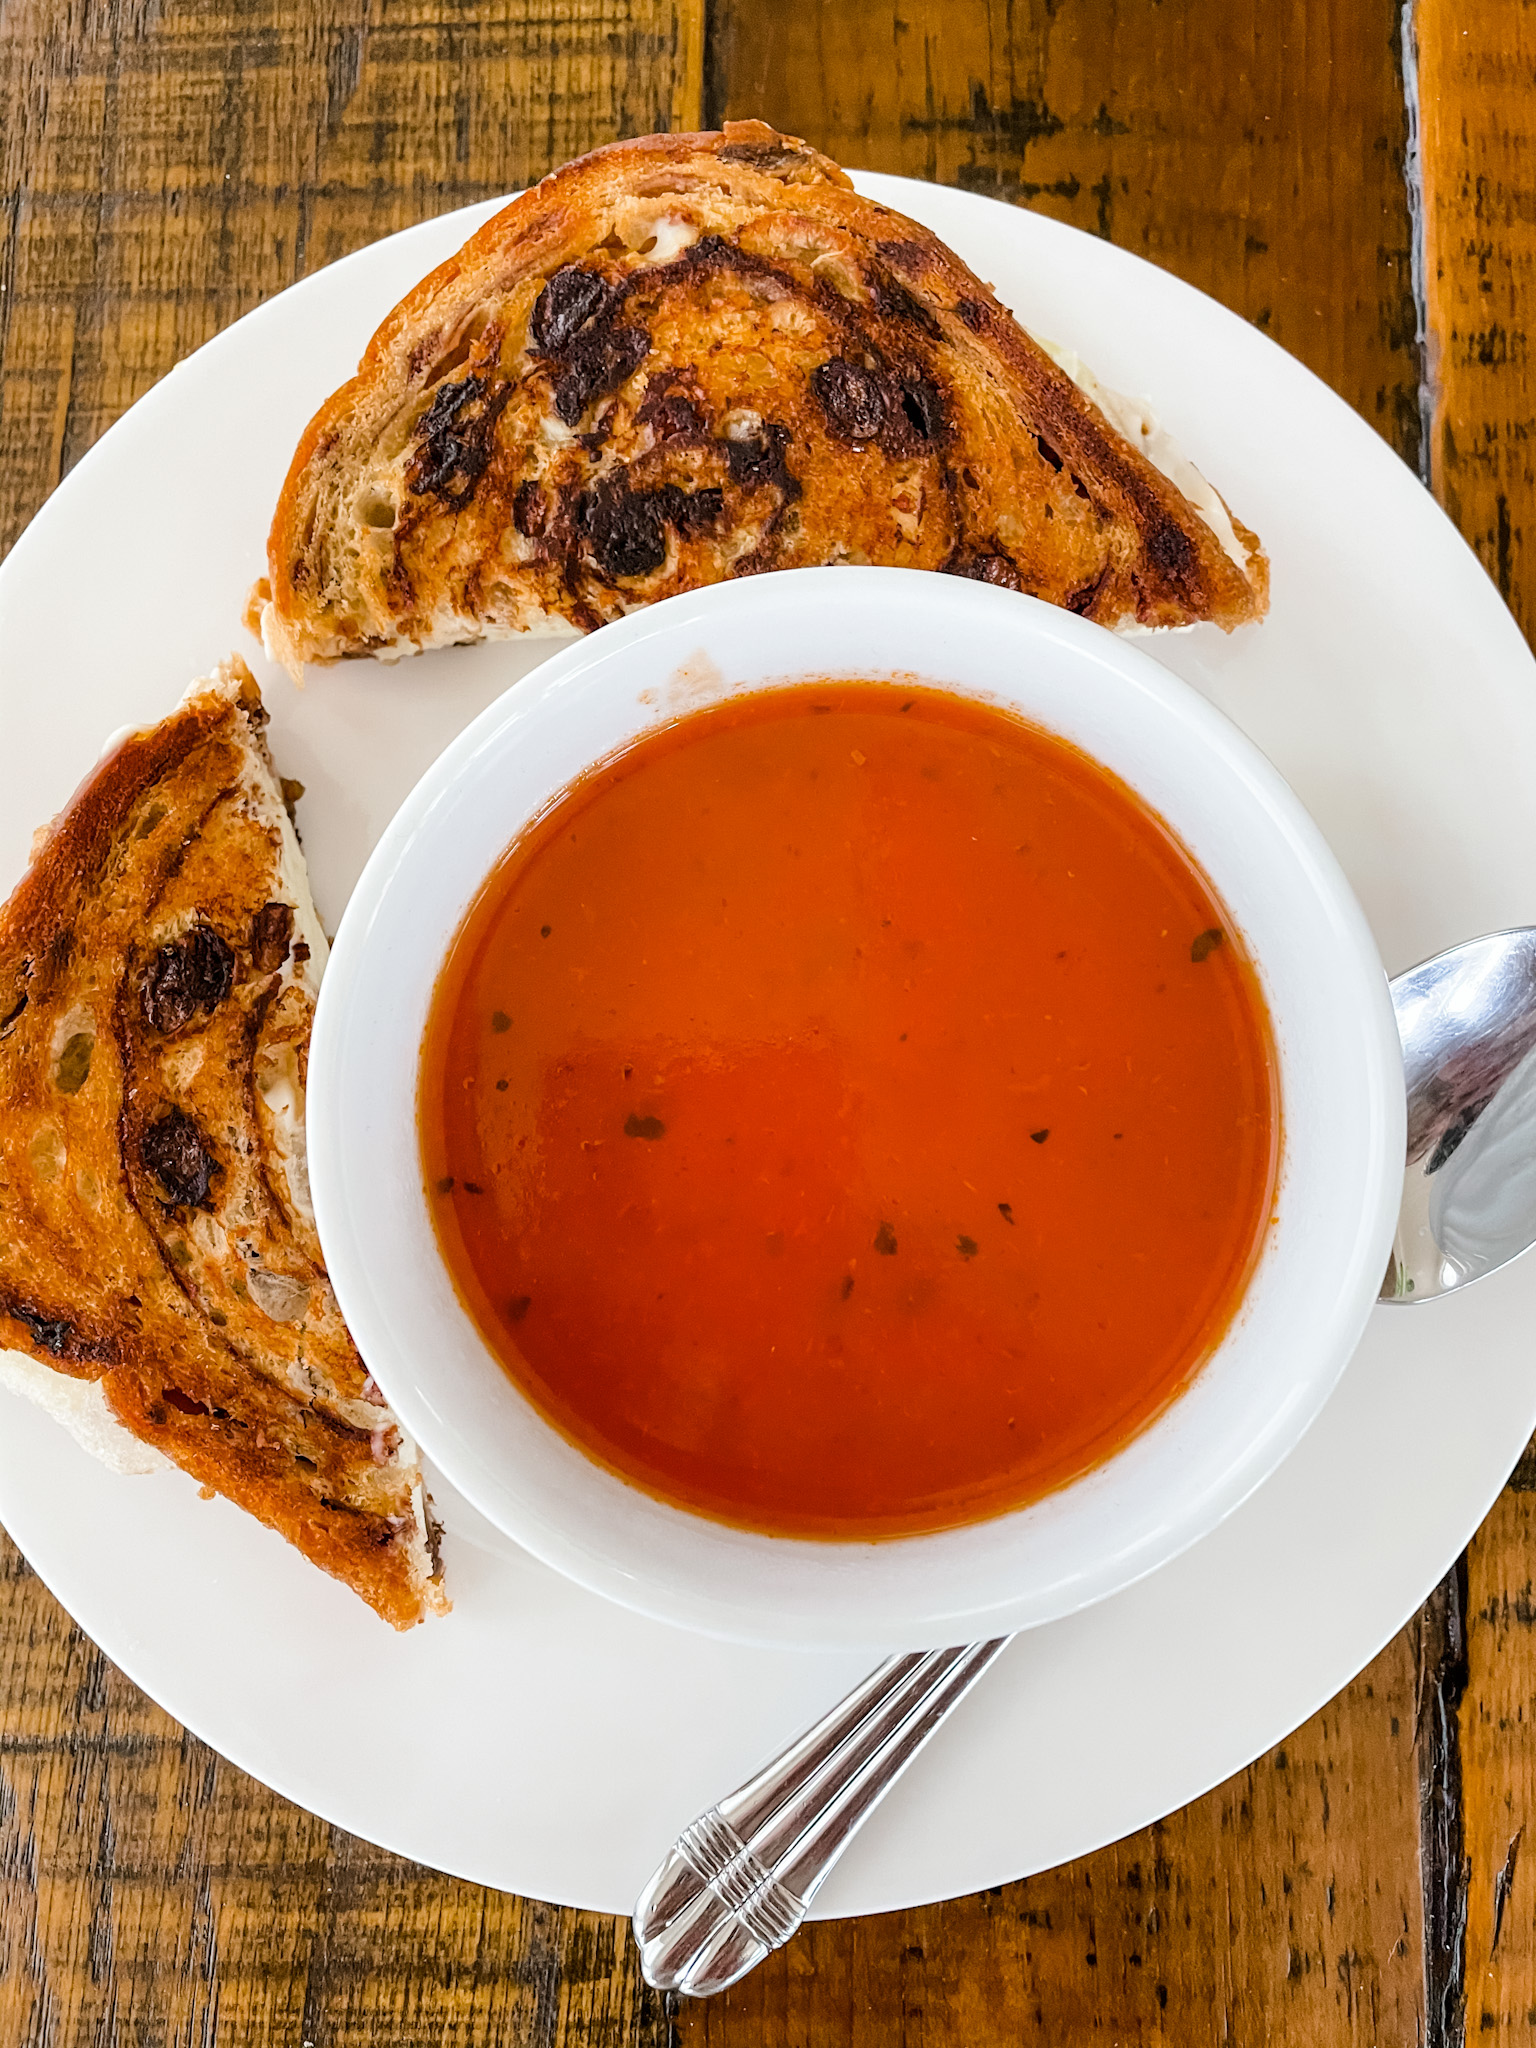 A cut in half Grilled Apple and Brie Cheese Sandwiches placed next to the bowl of tomato soup